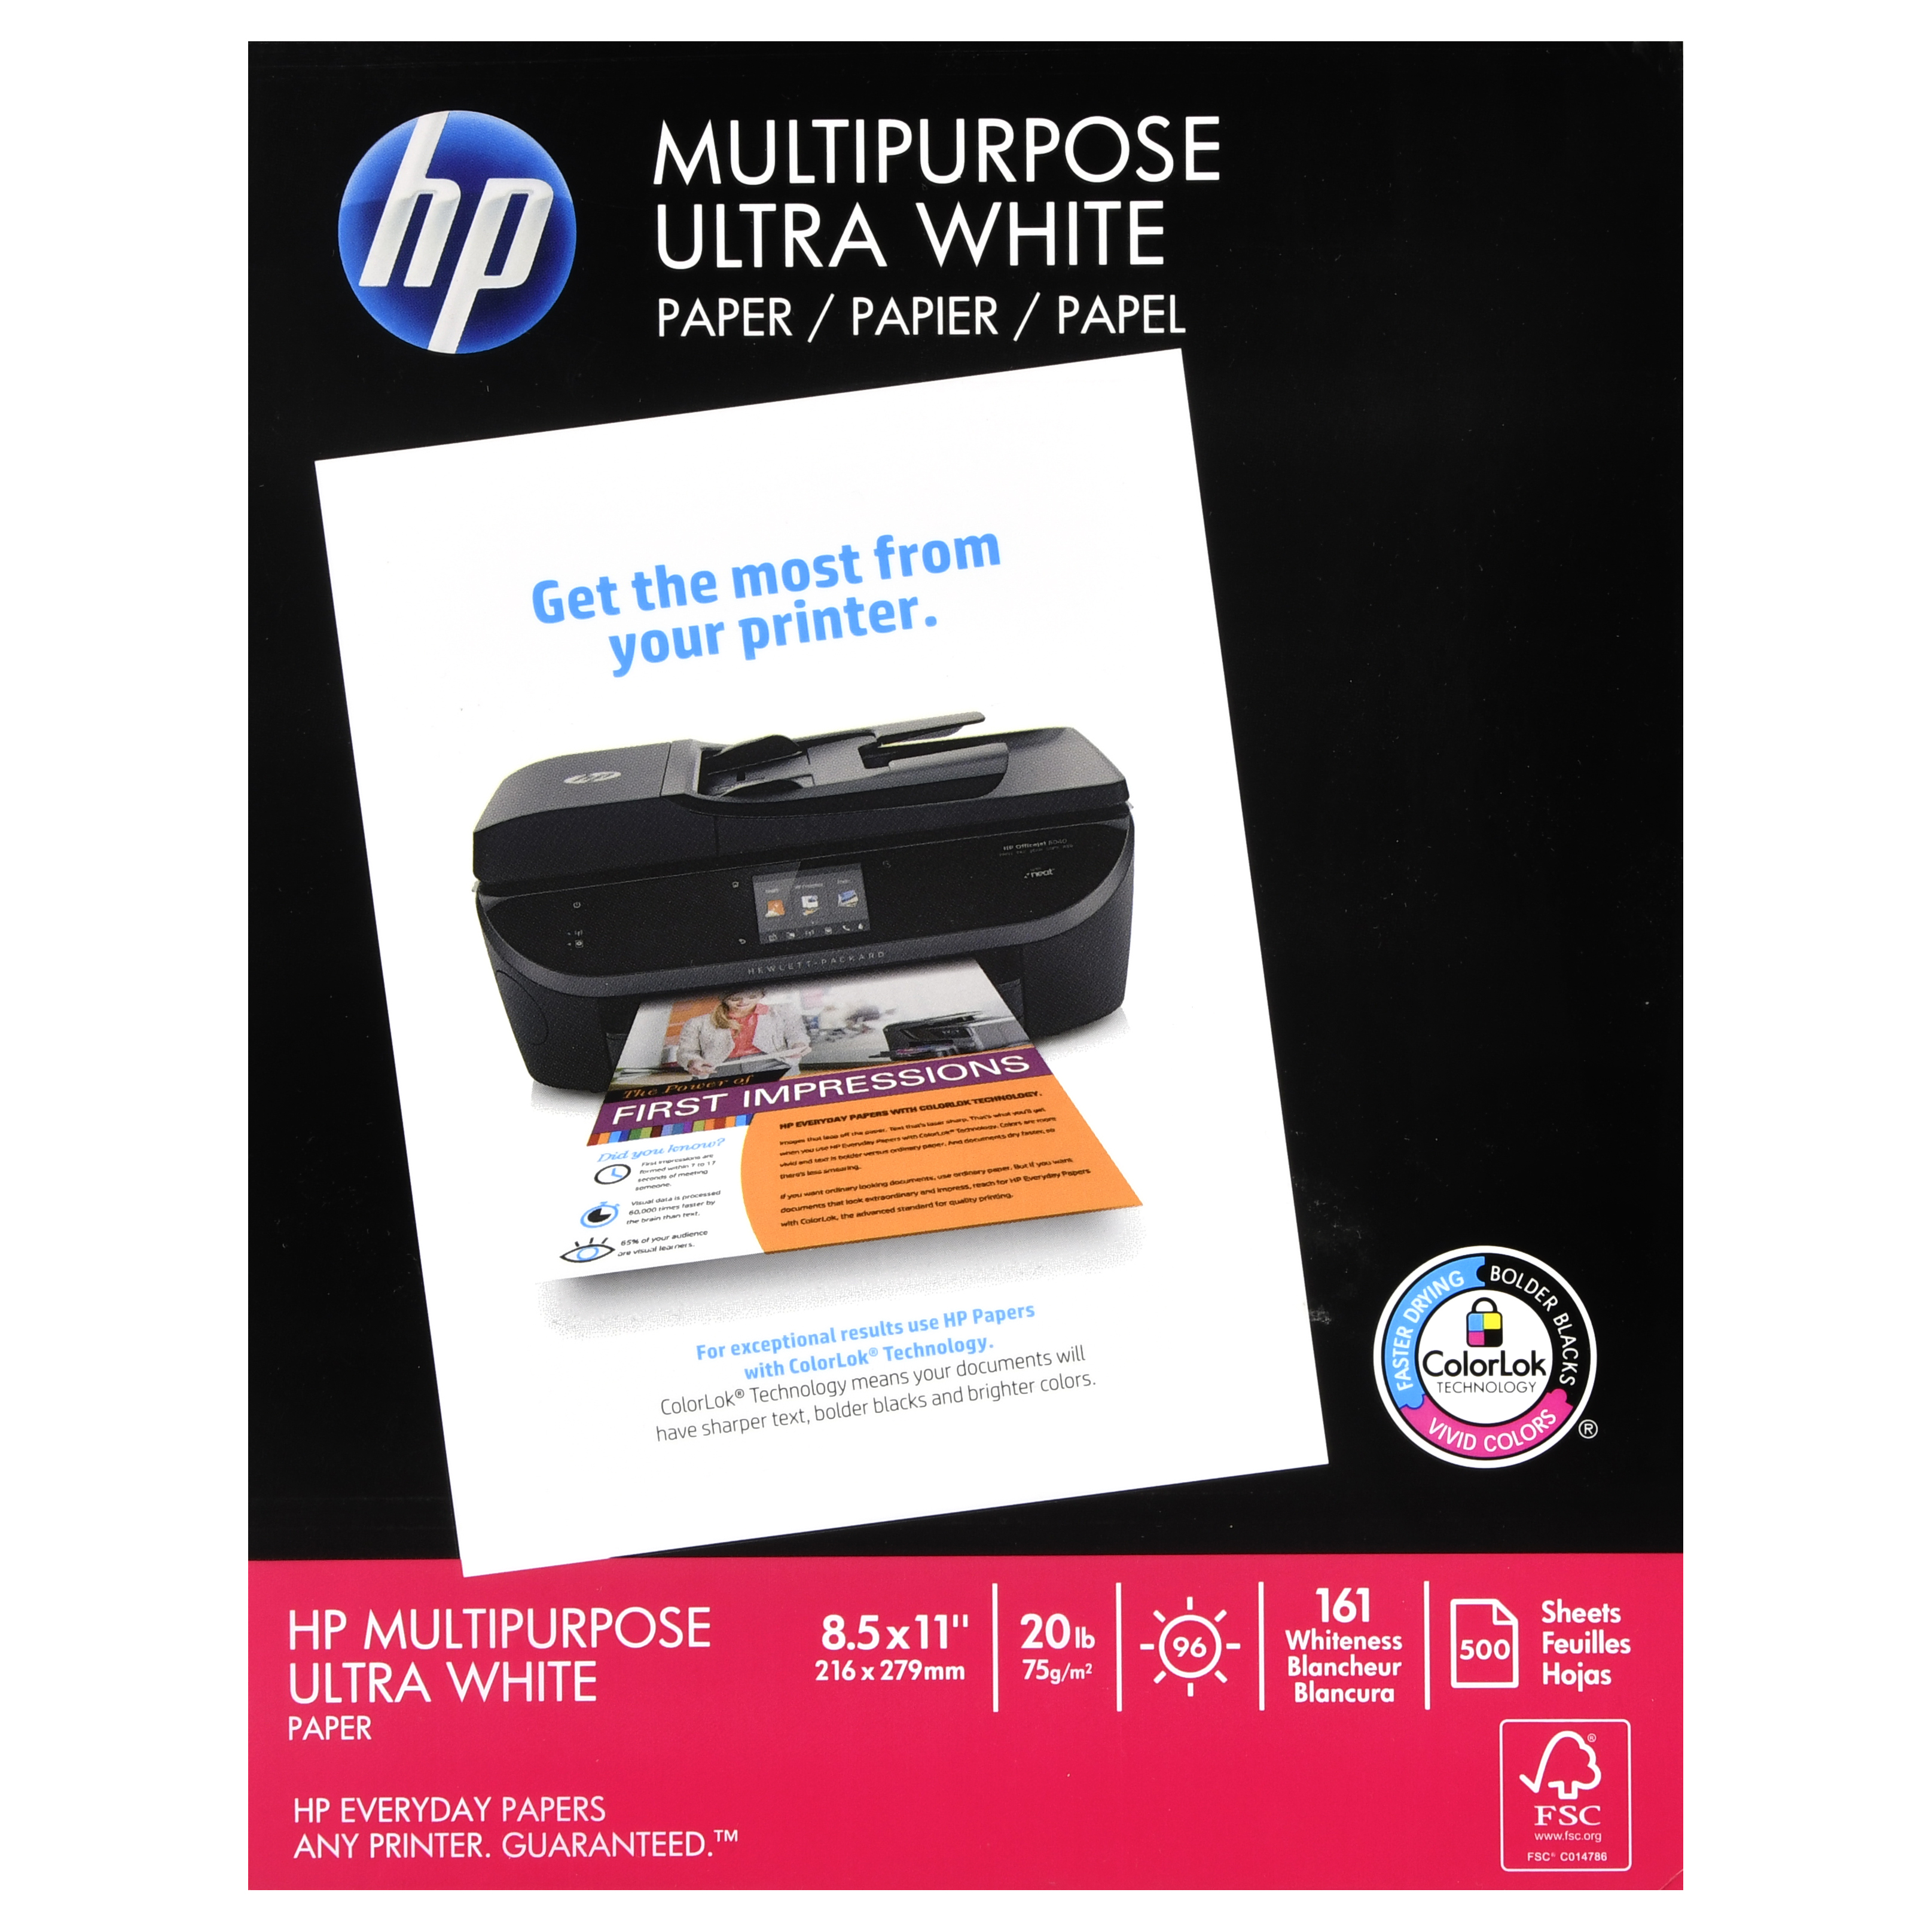 HP Multipurpose Paper, 8.5 x 11 In, 20 lb, 96 Bright, 500 sheets